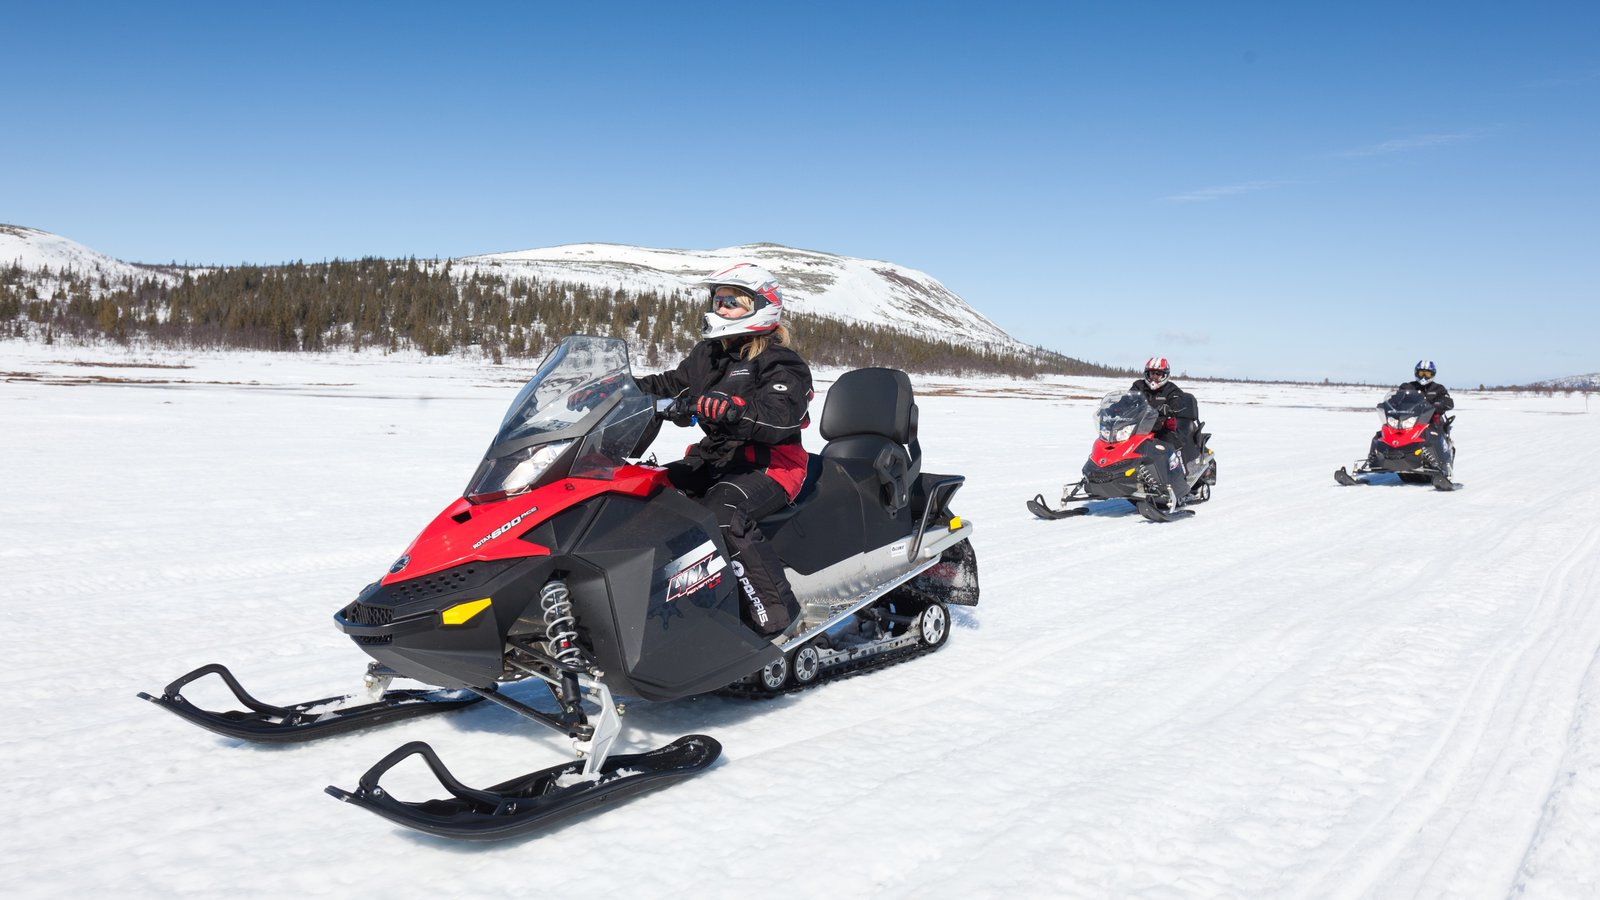 Vemdalen which includes snowmobiling and snow as well as a small group of people